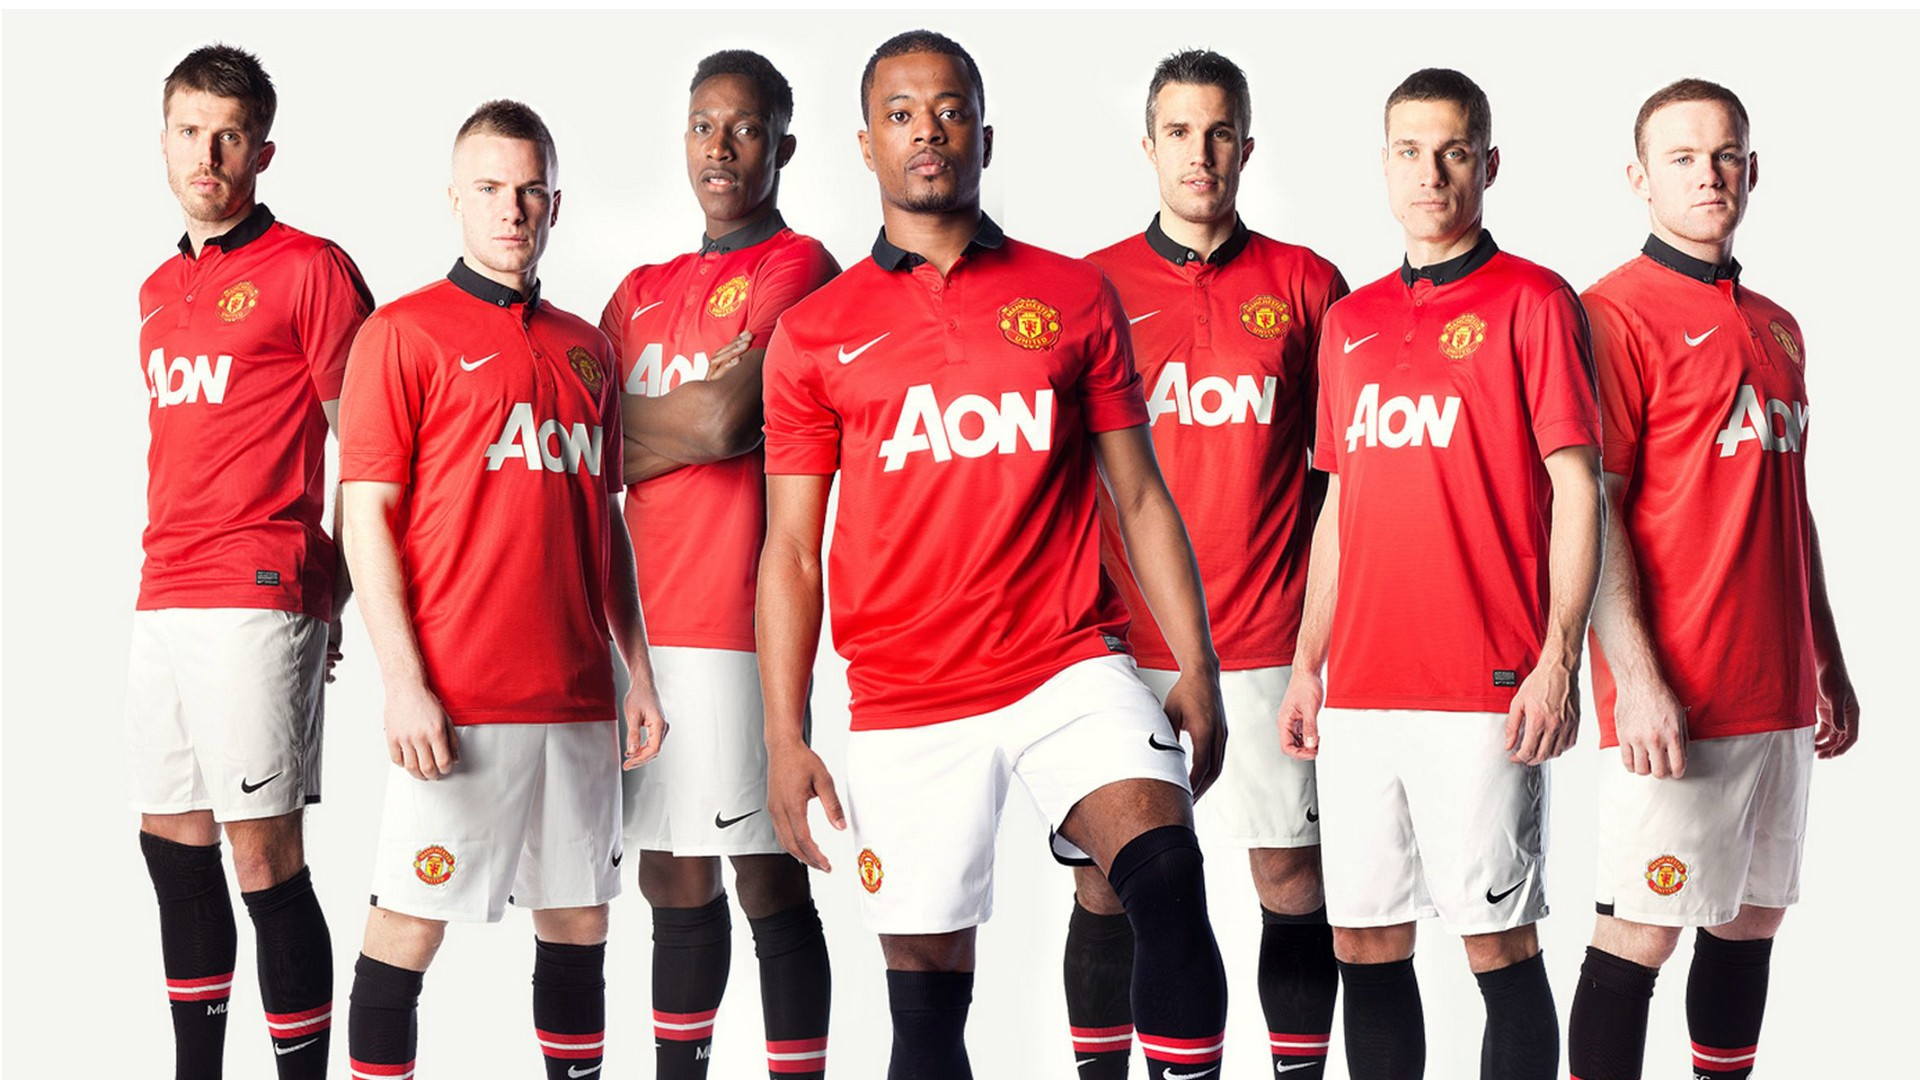 Manchester United Iphone Wallpaper Hd Manchester United Team 2013 Wallpapers Hd Wallpapers